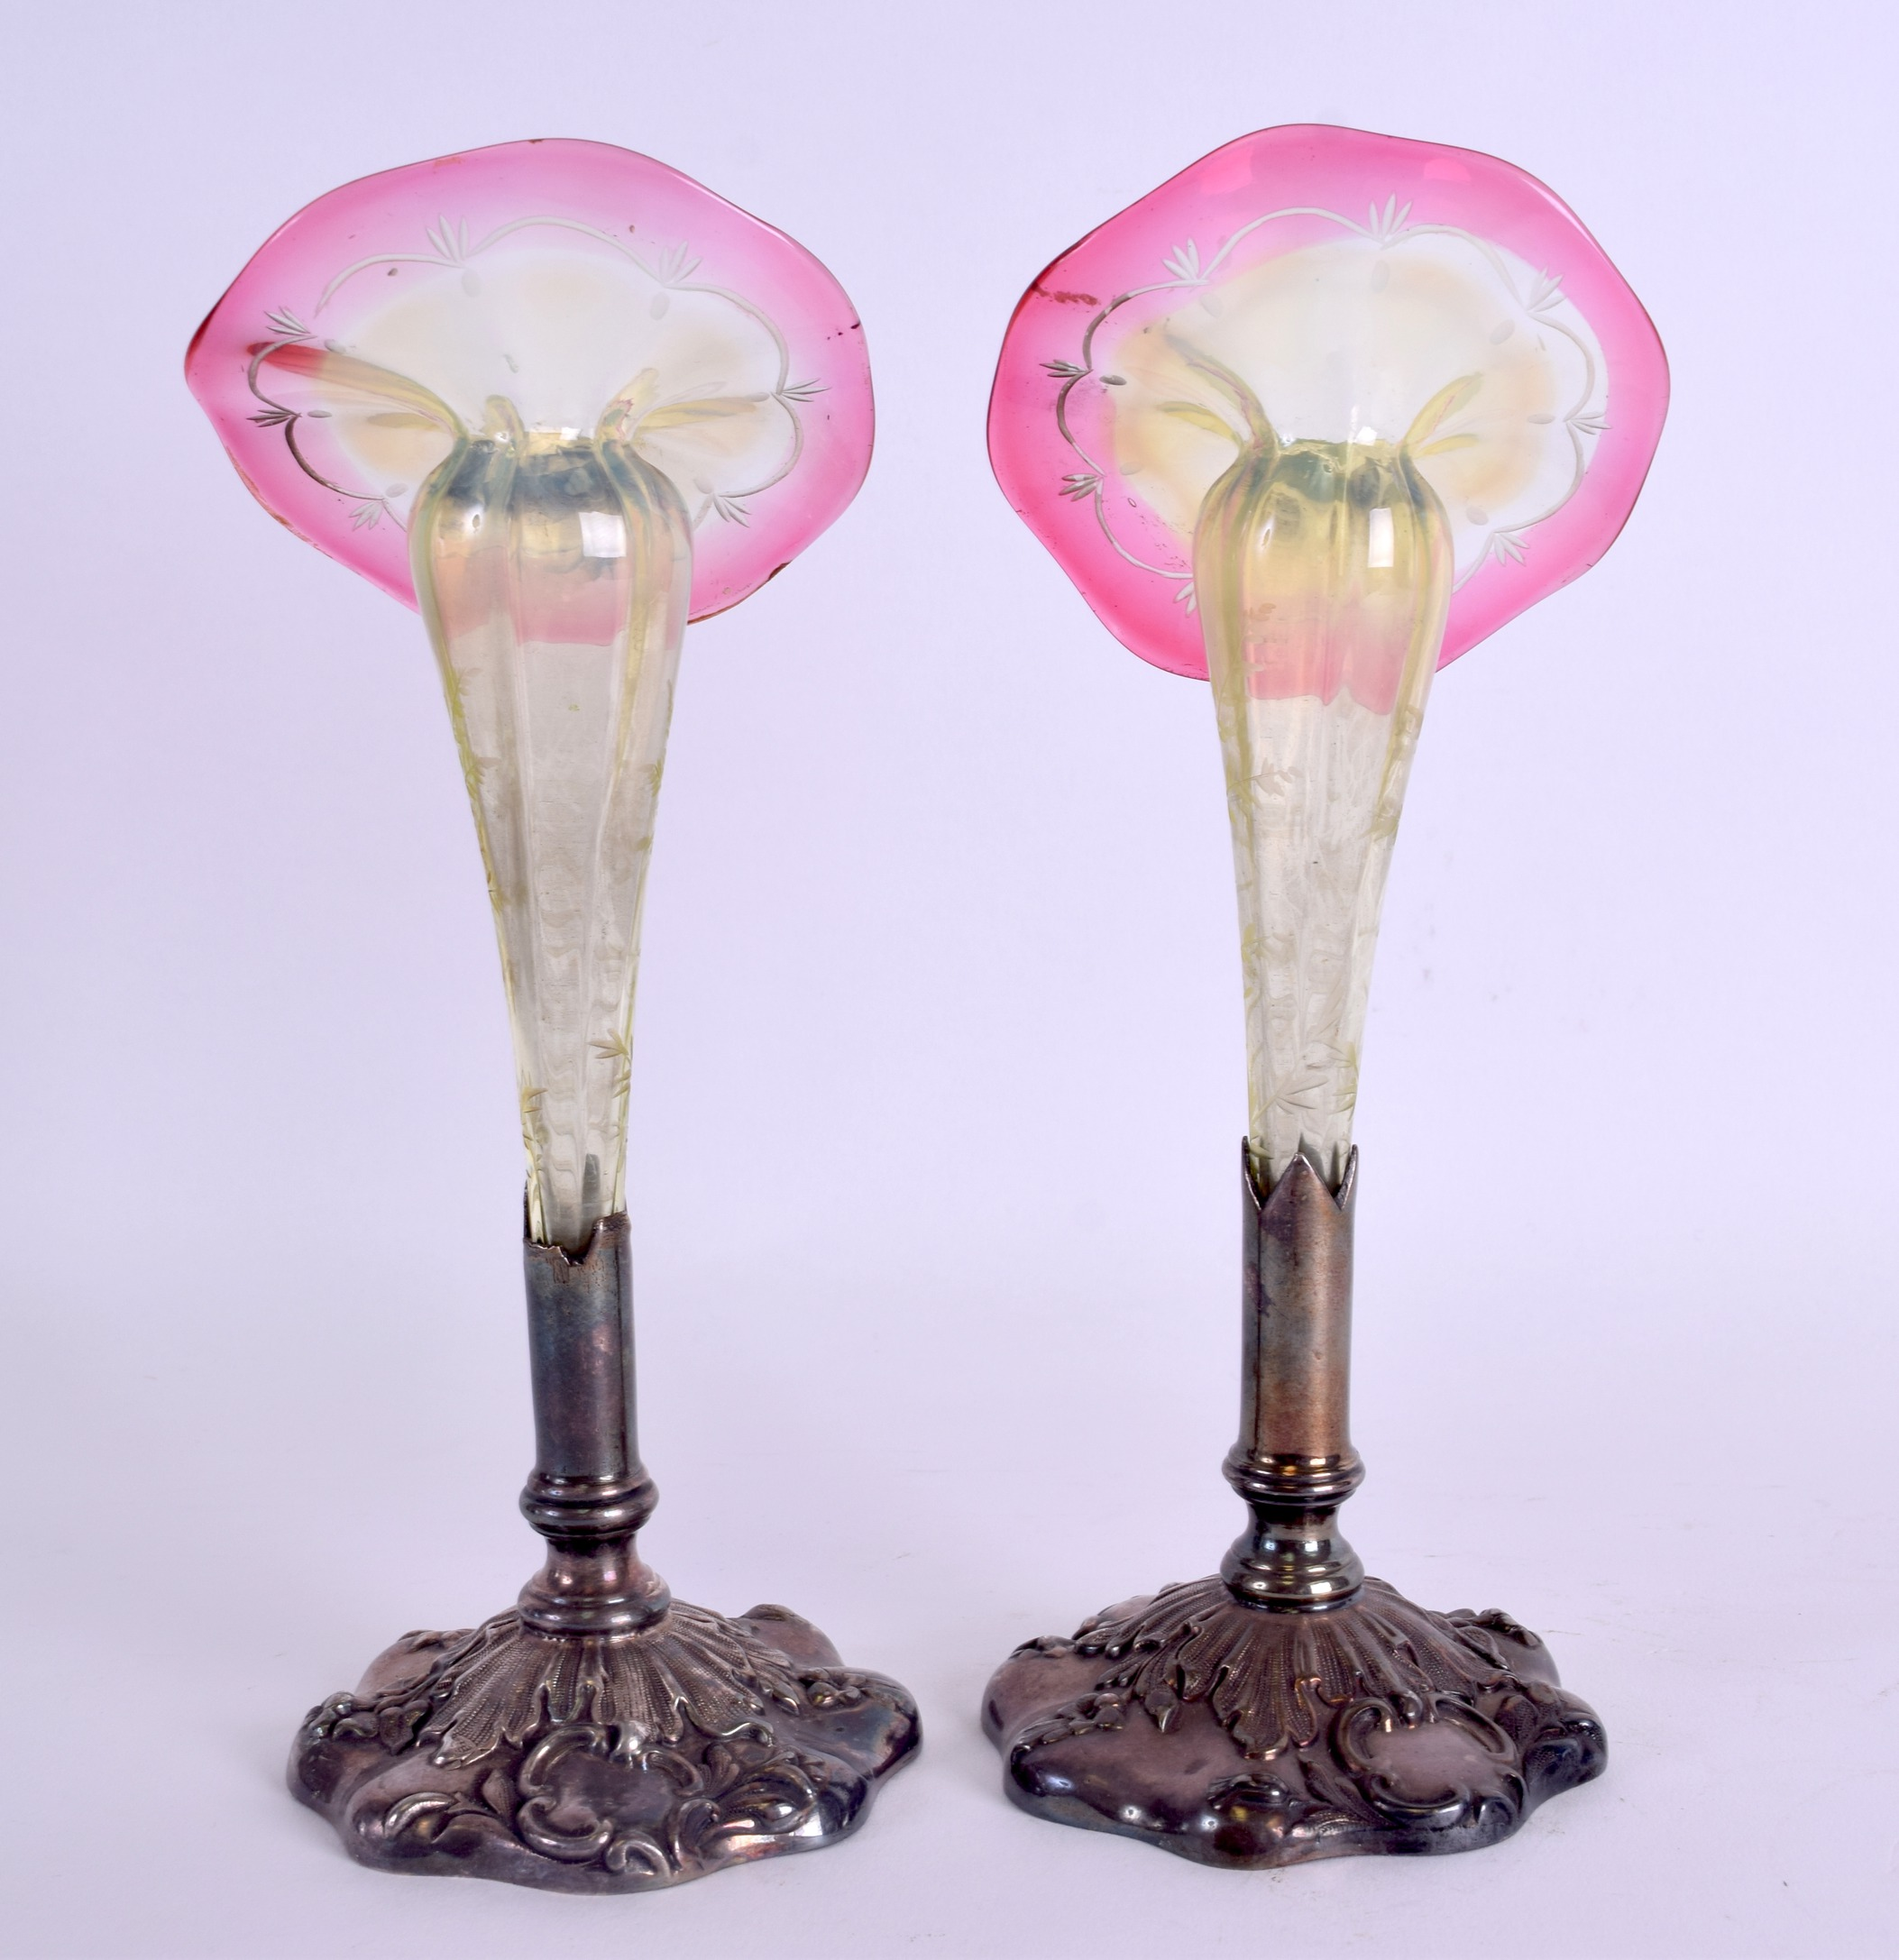 Lot 30 - A LOVELY PAIR OF LATE VICTORIAN GLASS POSY VASES in the manner of Webb, set within embossed silver